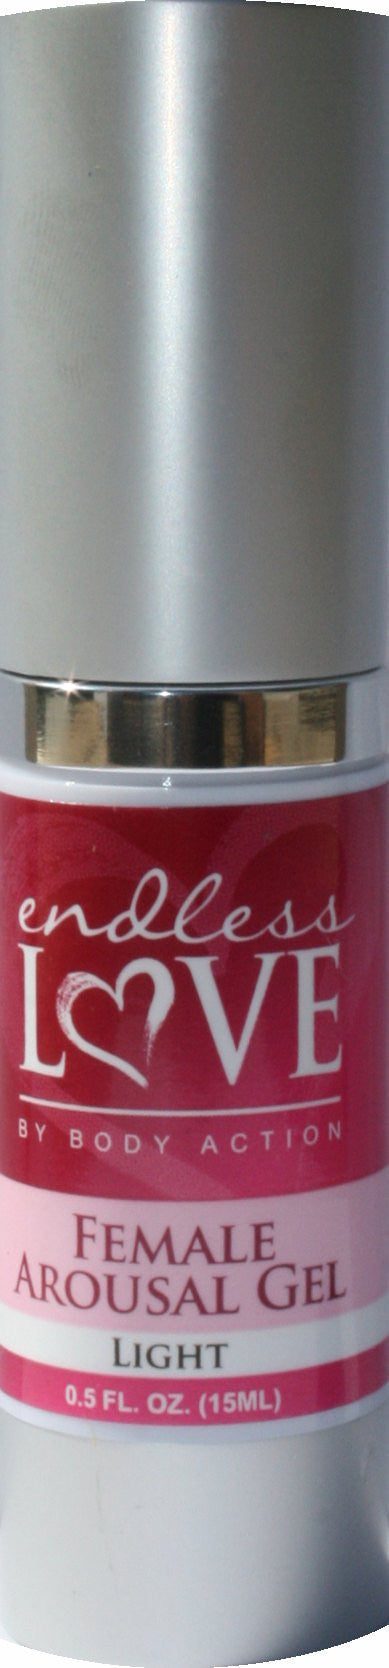 ENDLESS LOVE FEMALE AROUSAL GEL LIGHT 0.5 OZ - Sex Toy Factory - Body Action Products